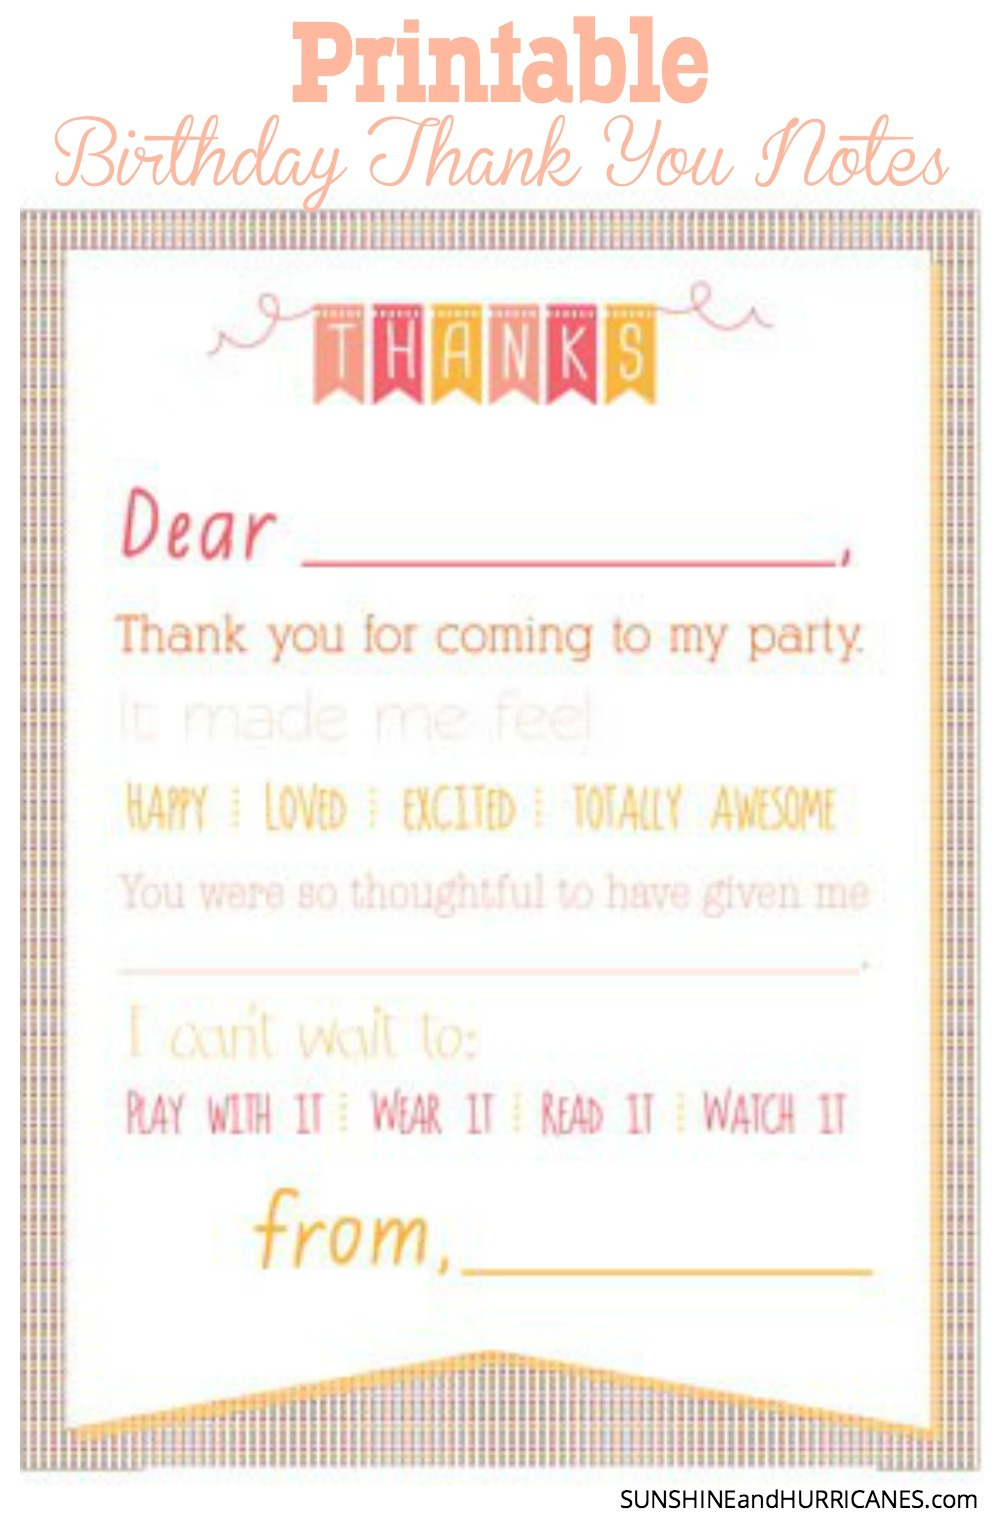 Printable birthday thank you notes spiritdancerdesigns